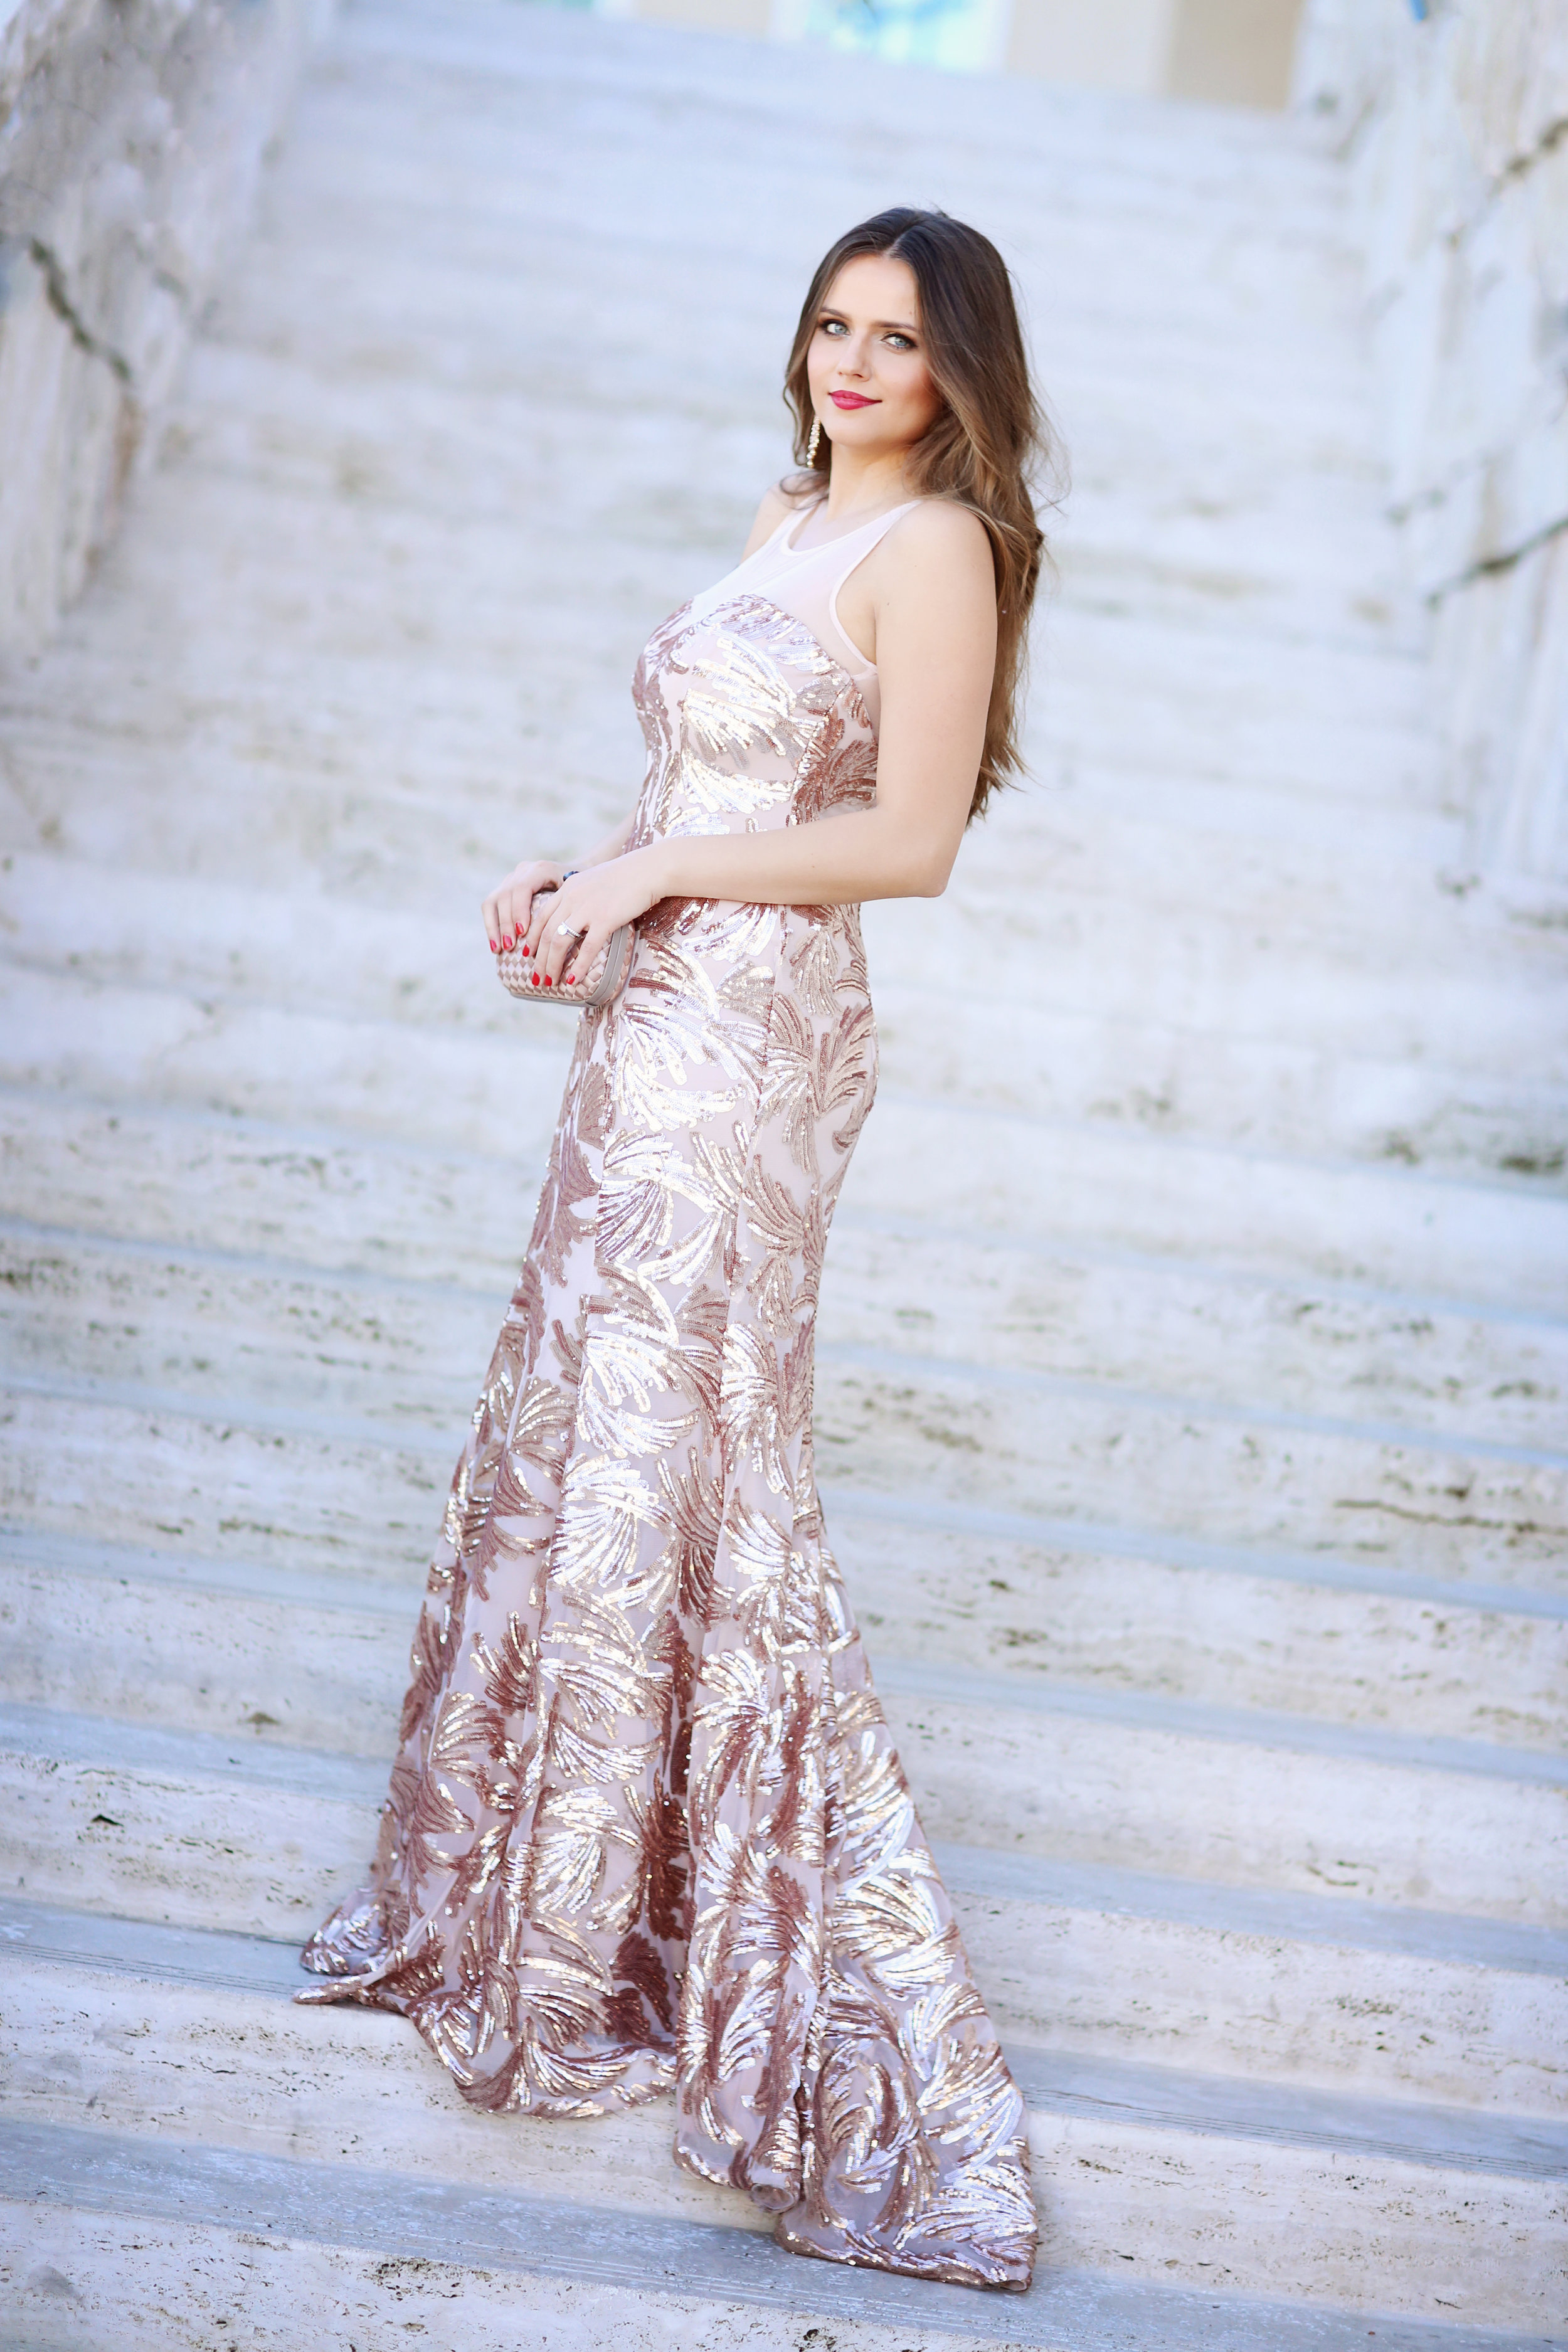 rose gold evening gown on fashion blogger Irina bond of Bond Girl Glam